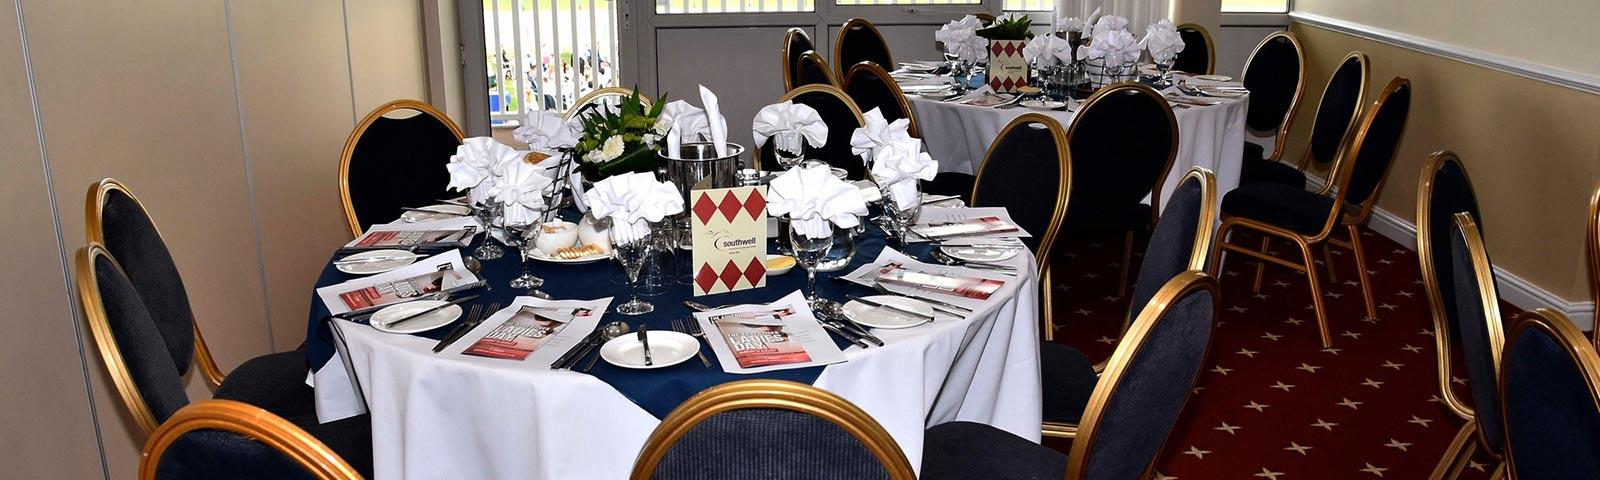 Dining table dressed ready to welcome guests at Southwell Racecourse